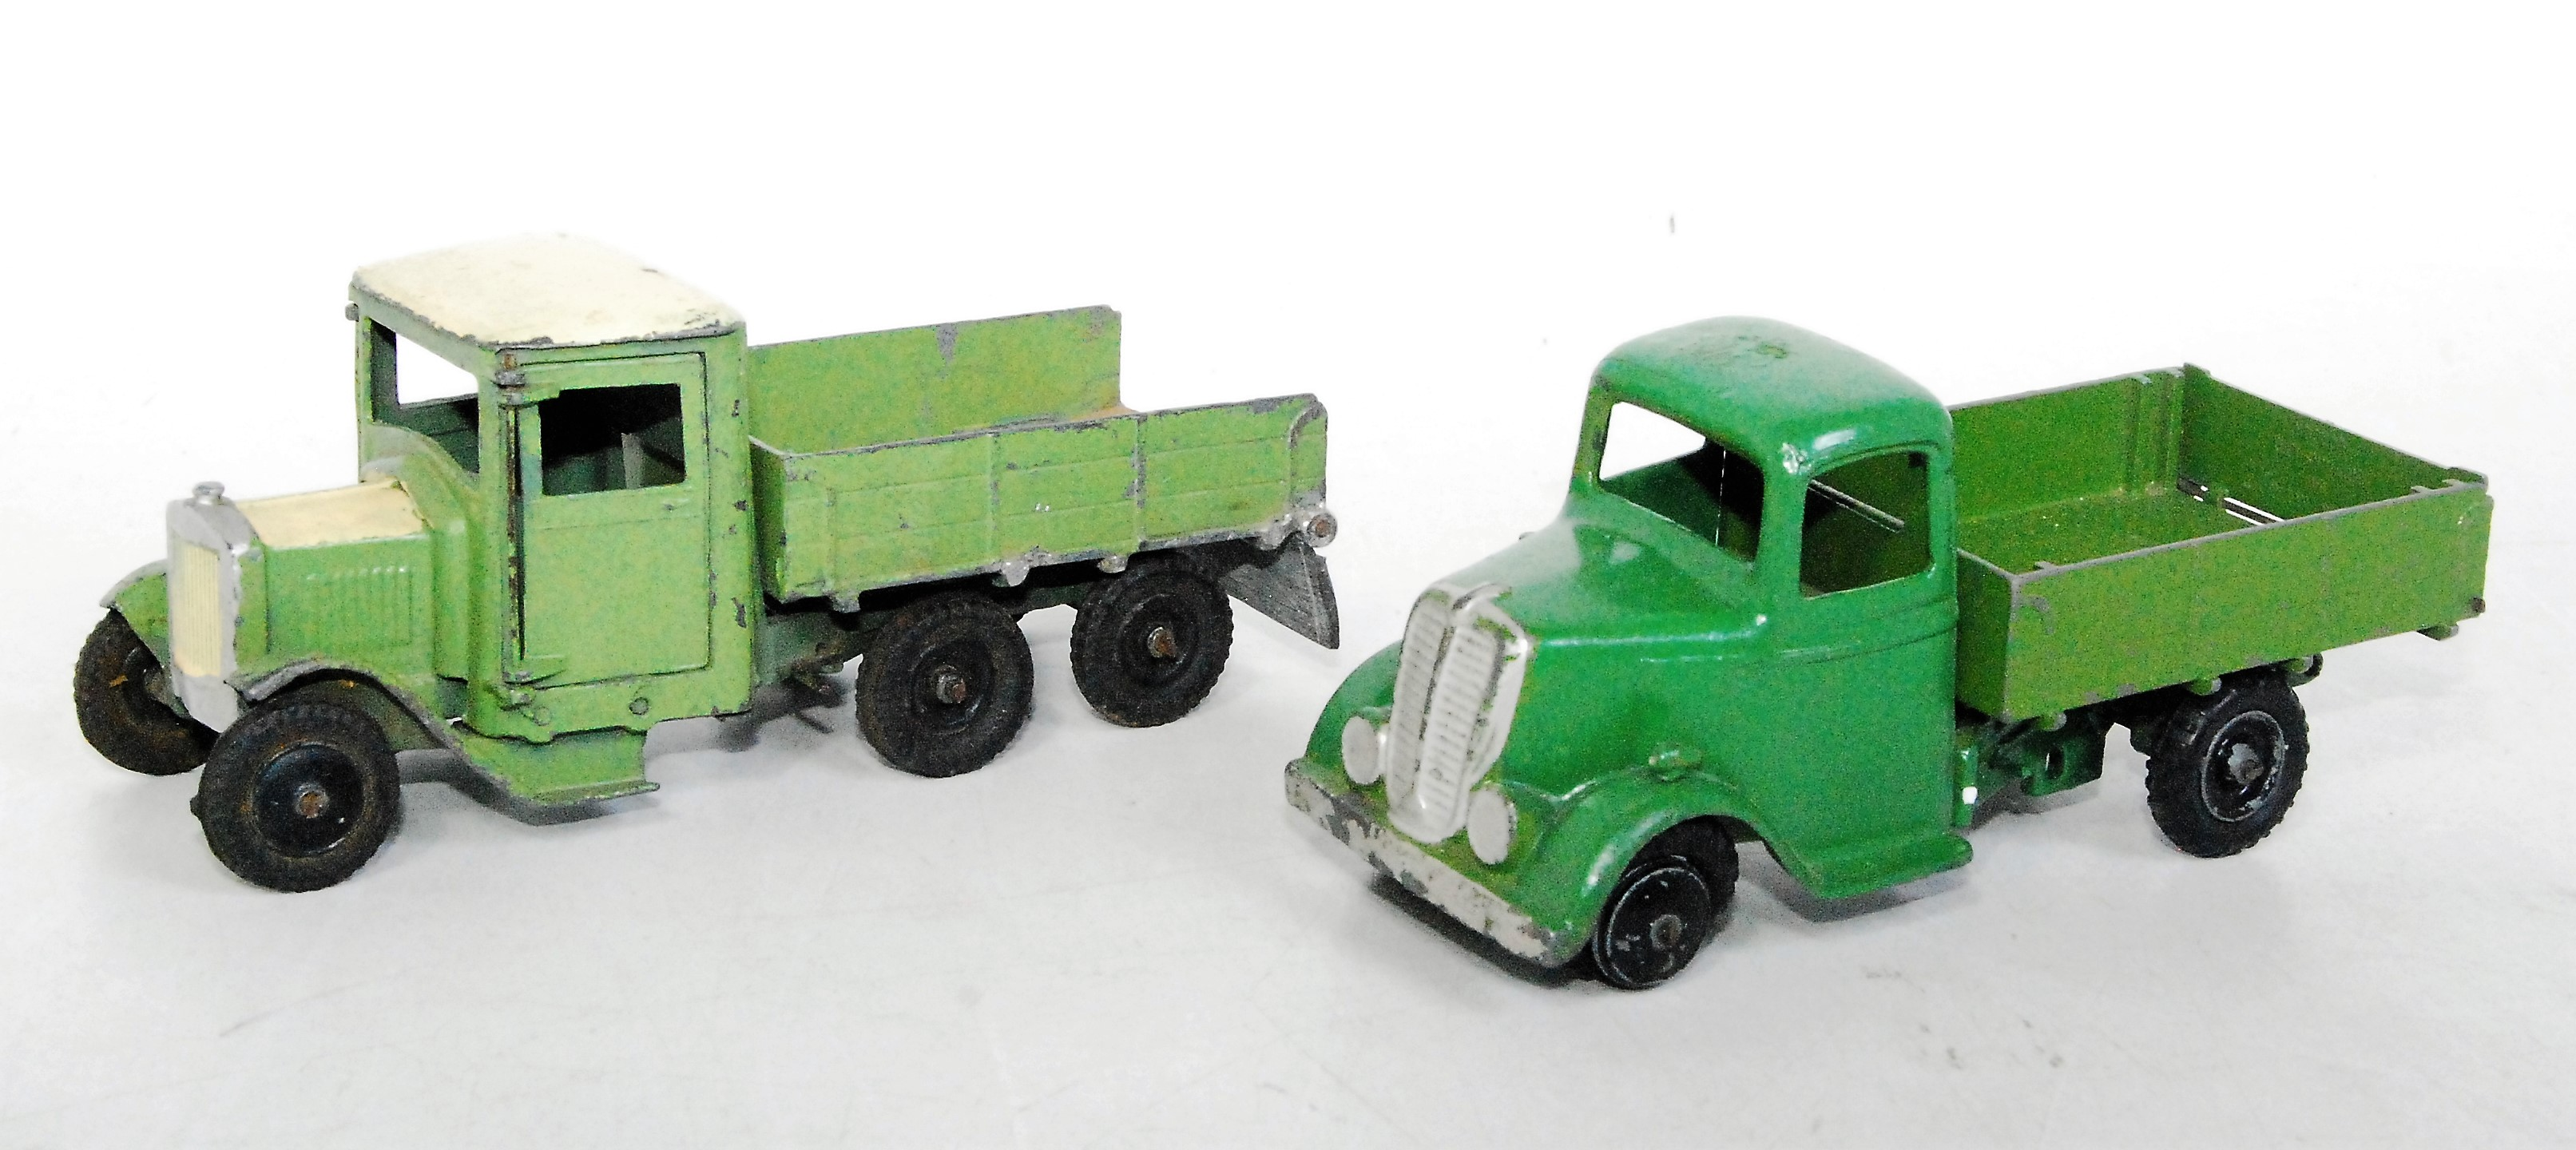 A Britains repainted and partly restored tipper group to include a Britains No. 60F six wheel tipper